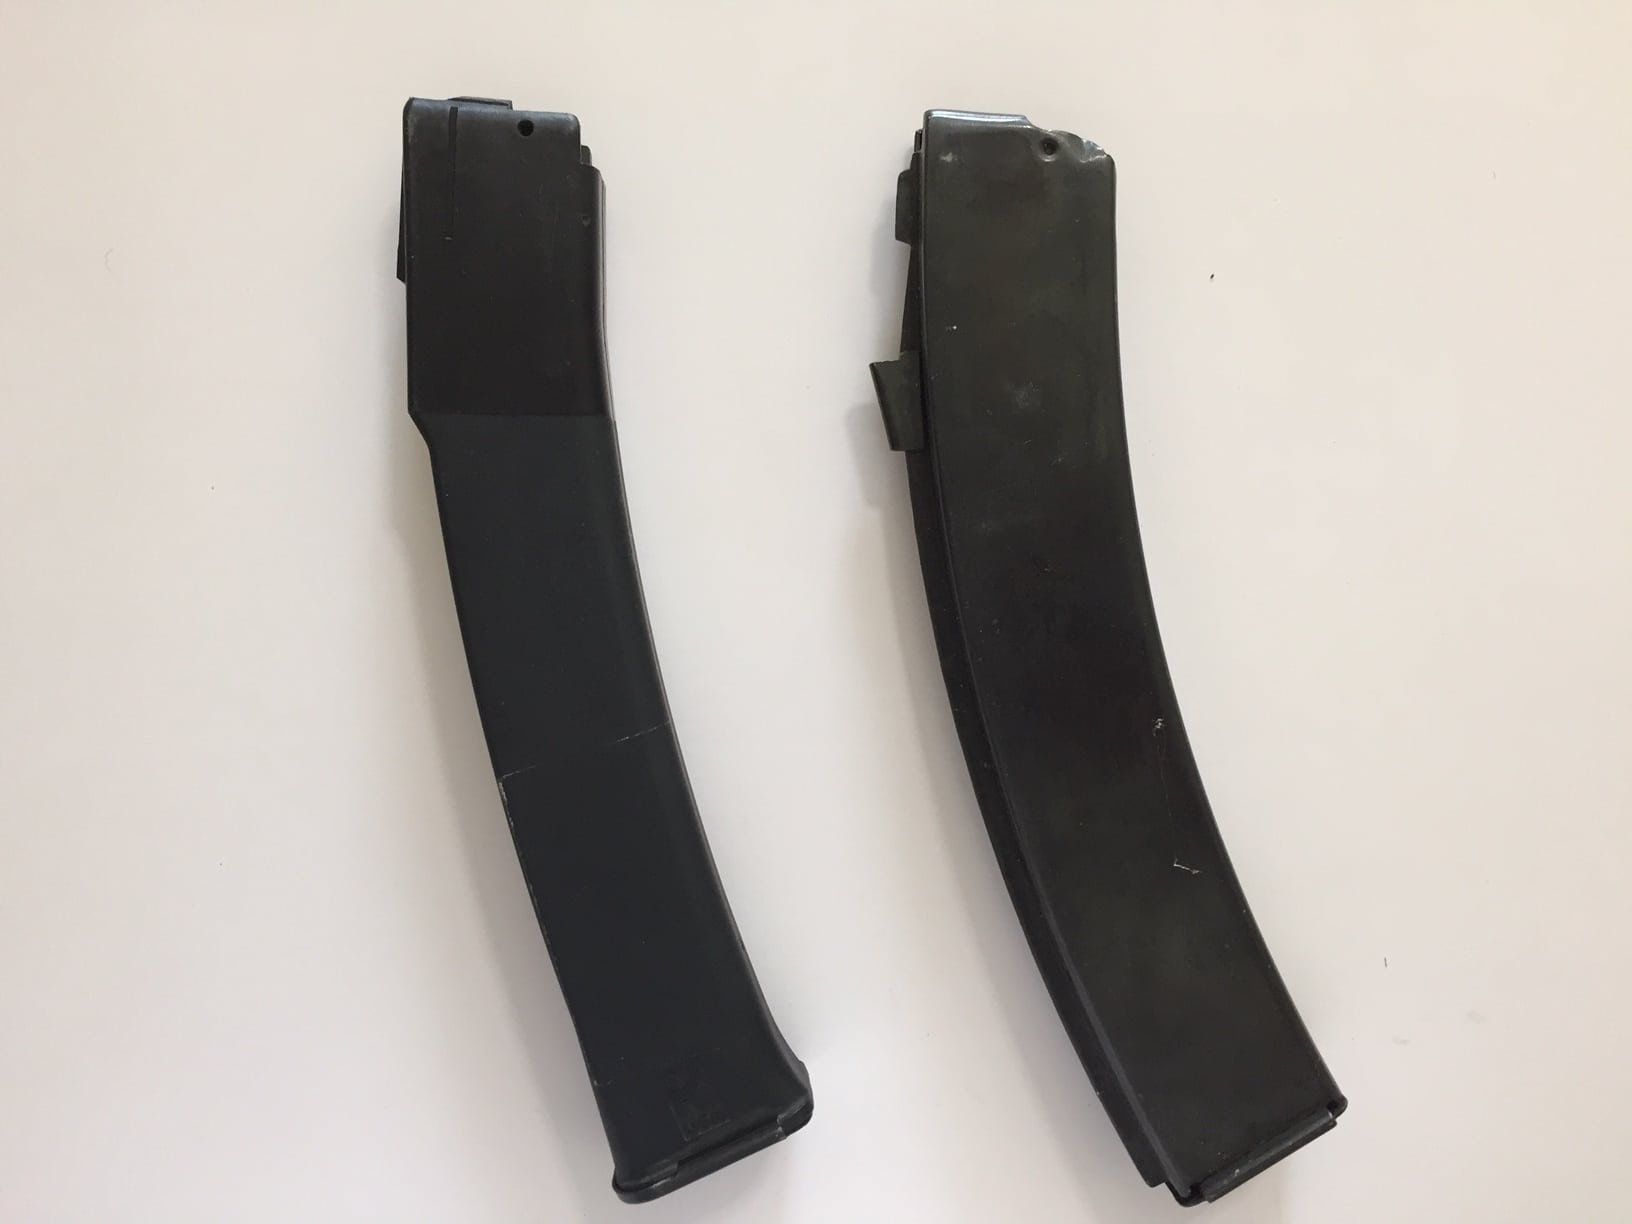 Figure 3 9x19mm Vityaz magazine (Left) mimics the double feed, double column design of the magazine used in the successful 7.62x25mm PPS-43 submachine gun (Right). What's old is new again. Photograph by author.